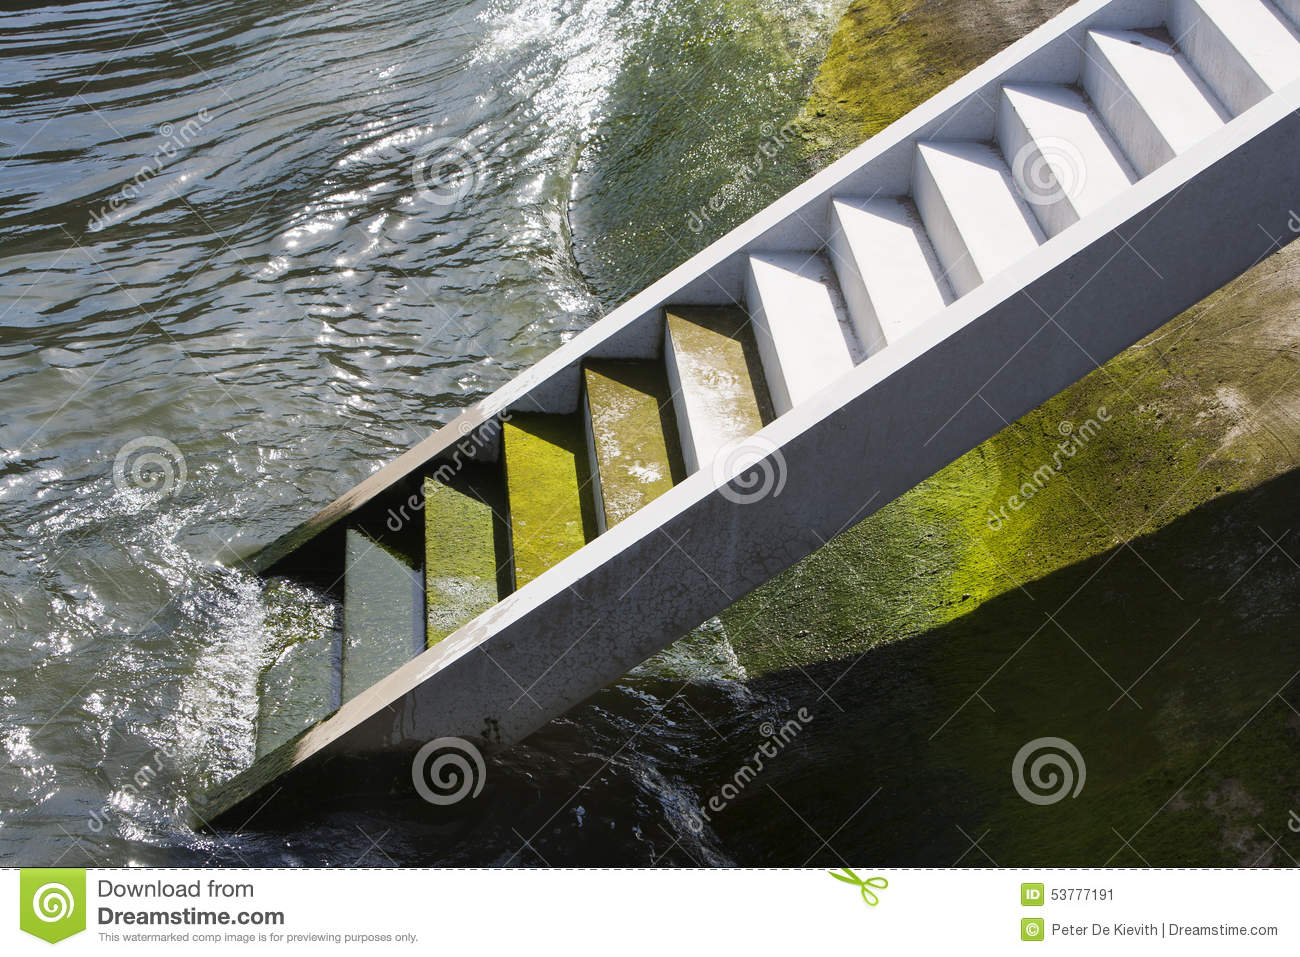 Ladder to success stock image  Image of rotterdam, drowning